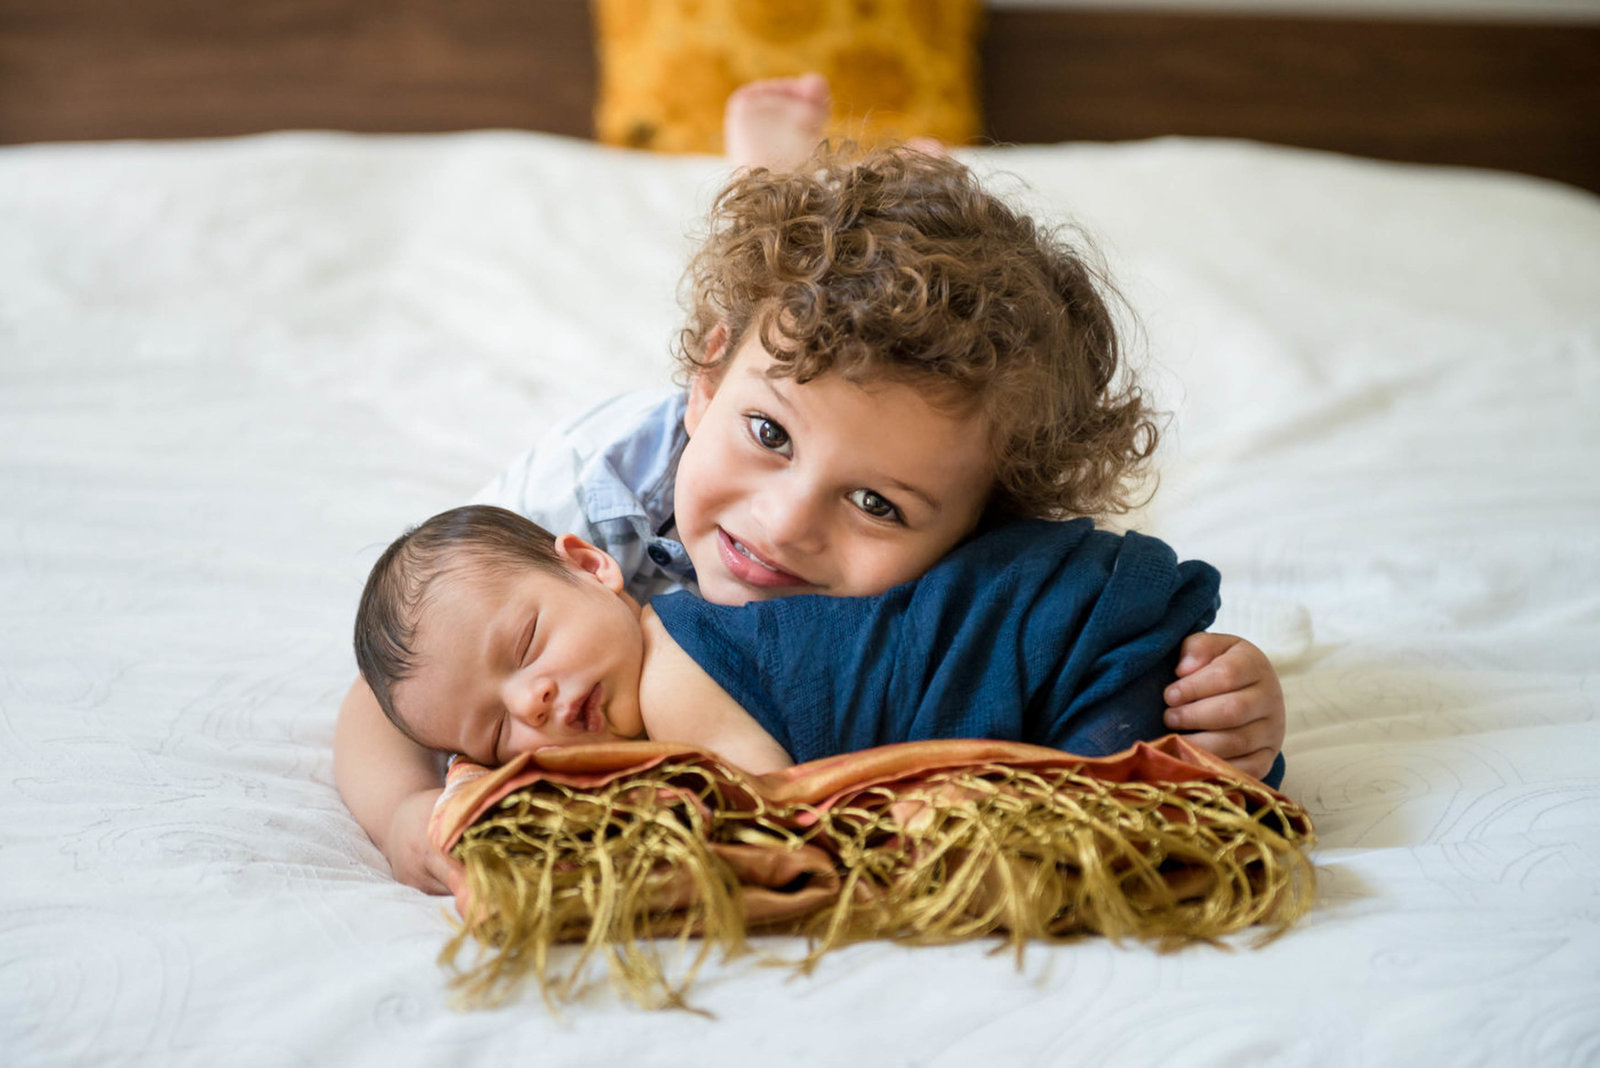 Boston-Newborn-Photographer-Lifestyle-Documentary-Home-Styled-Session-108